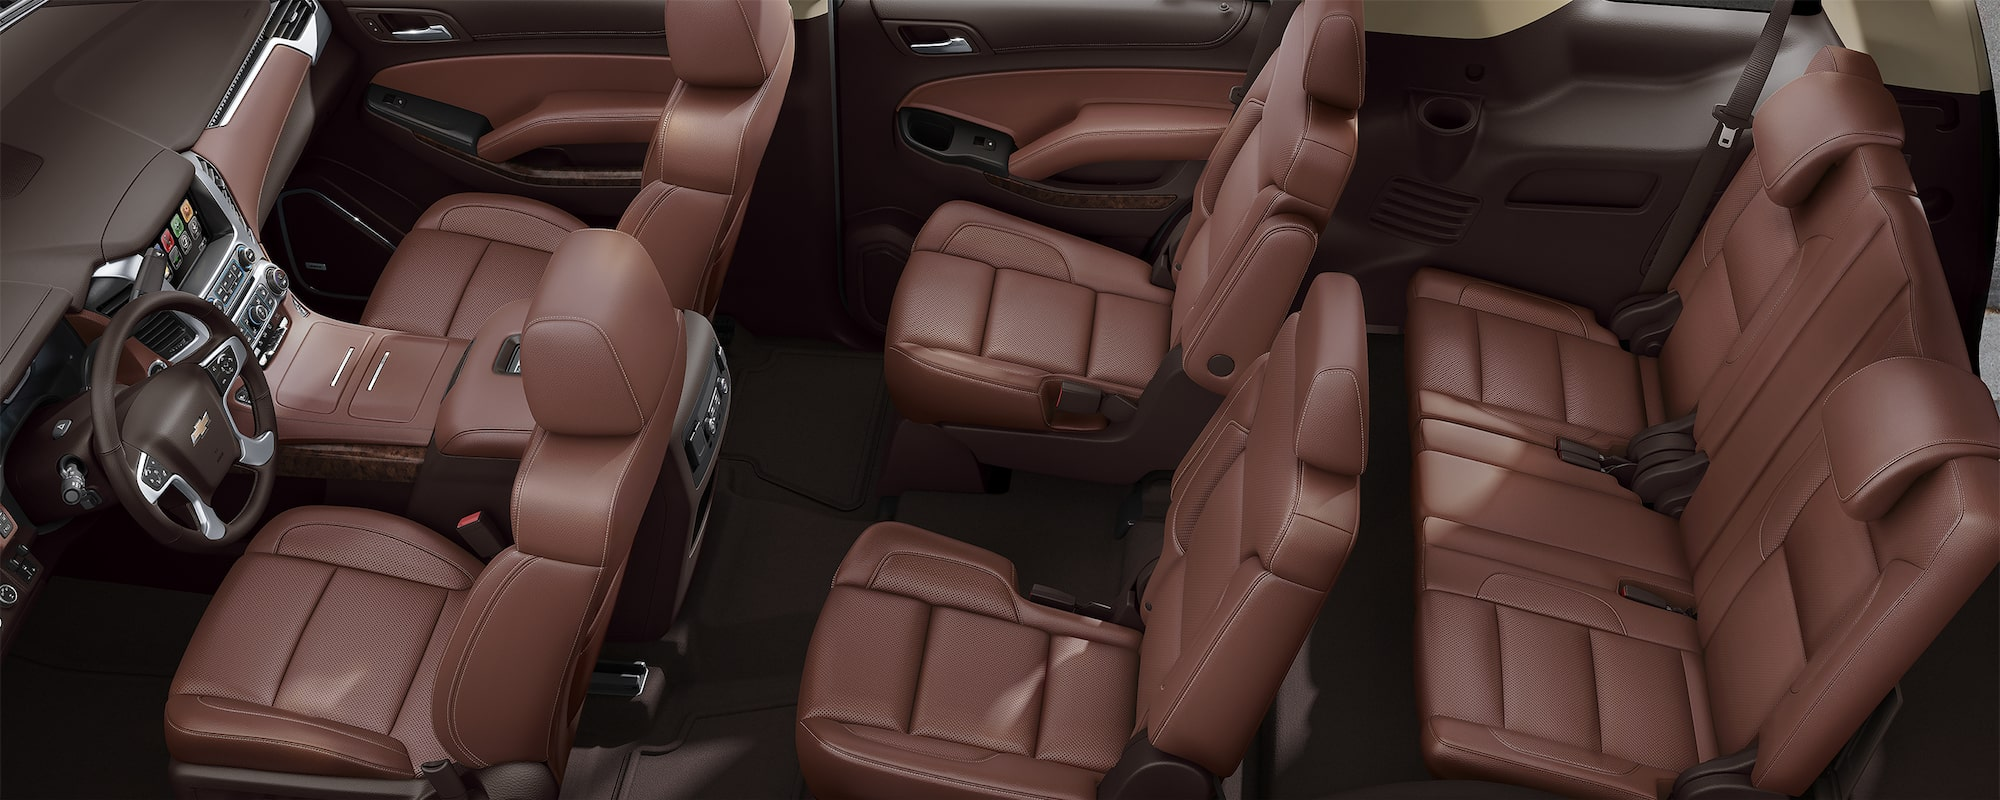 Chevrolet SUV Lineup: Interior Seating